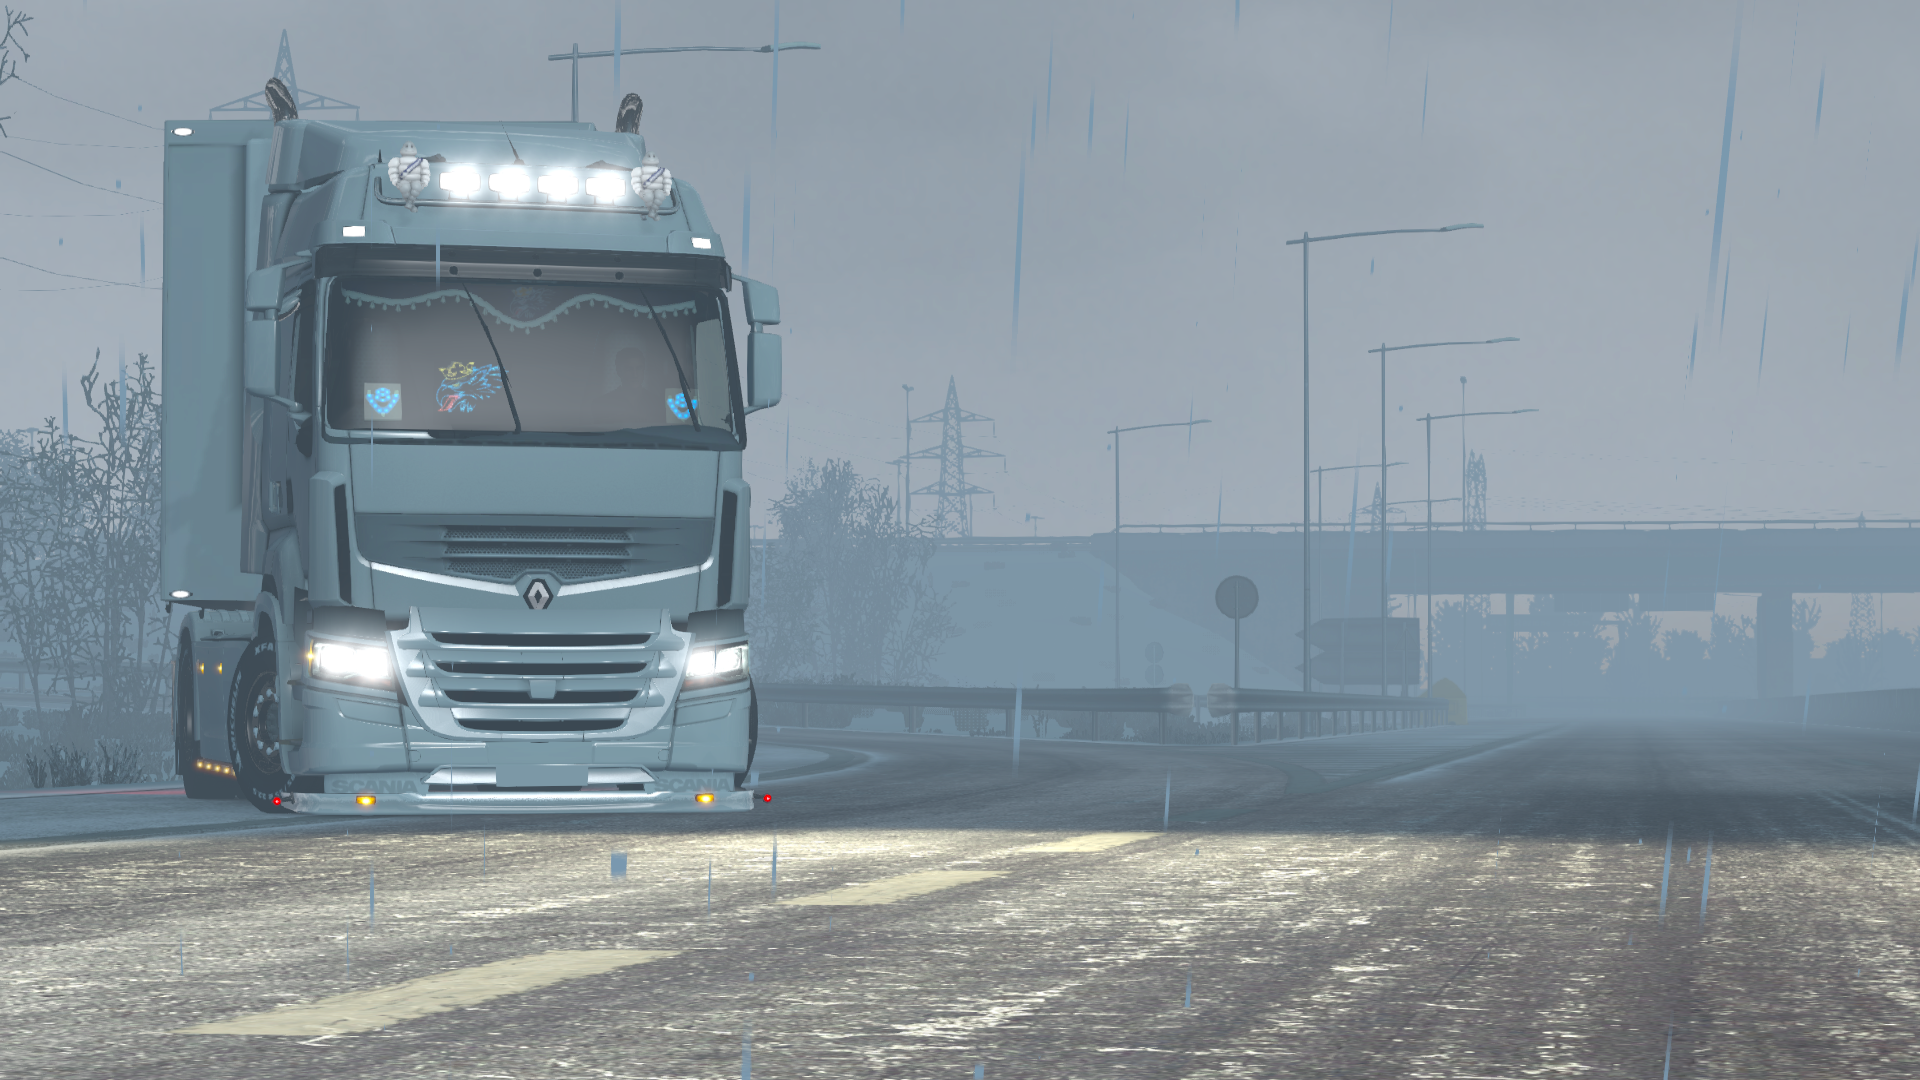 ets2_20181231_203216_00.png